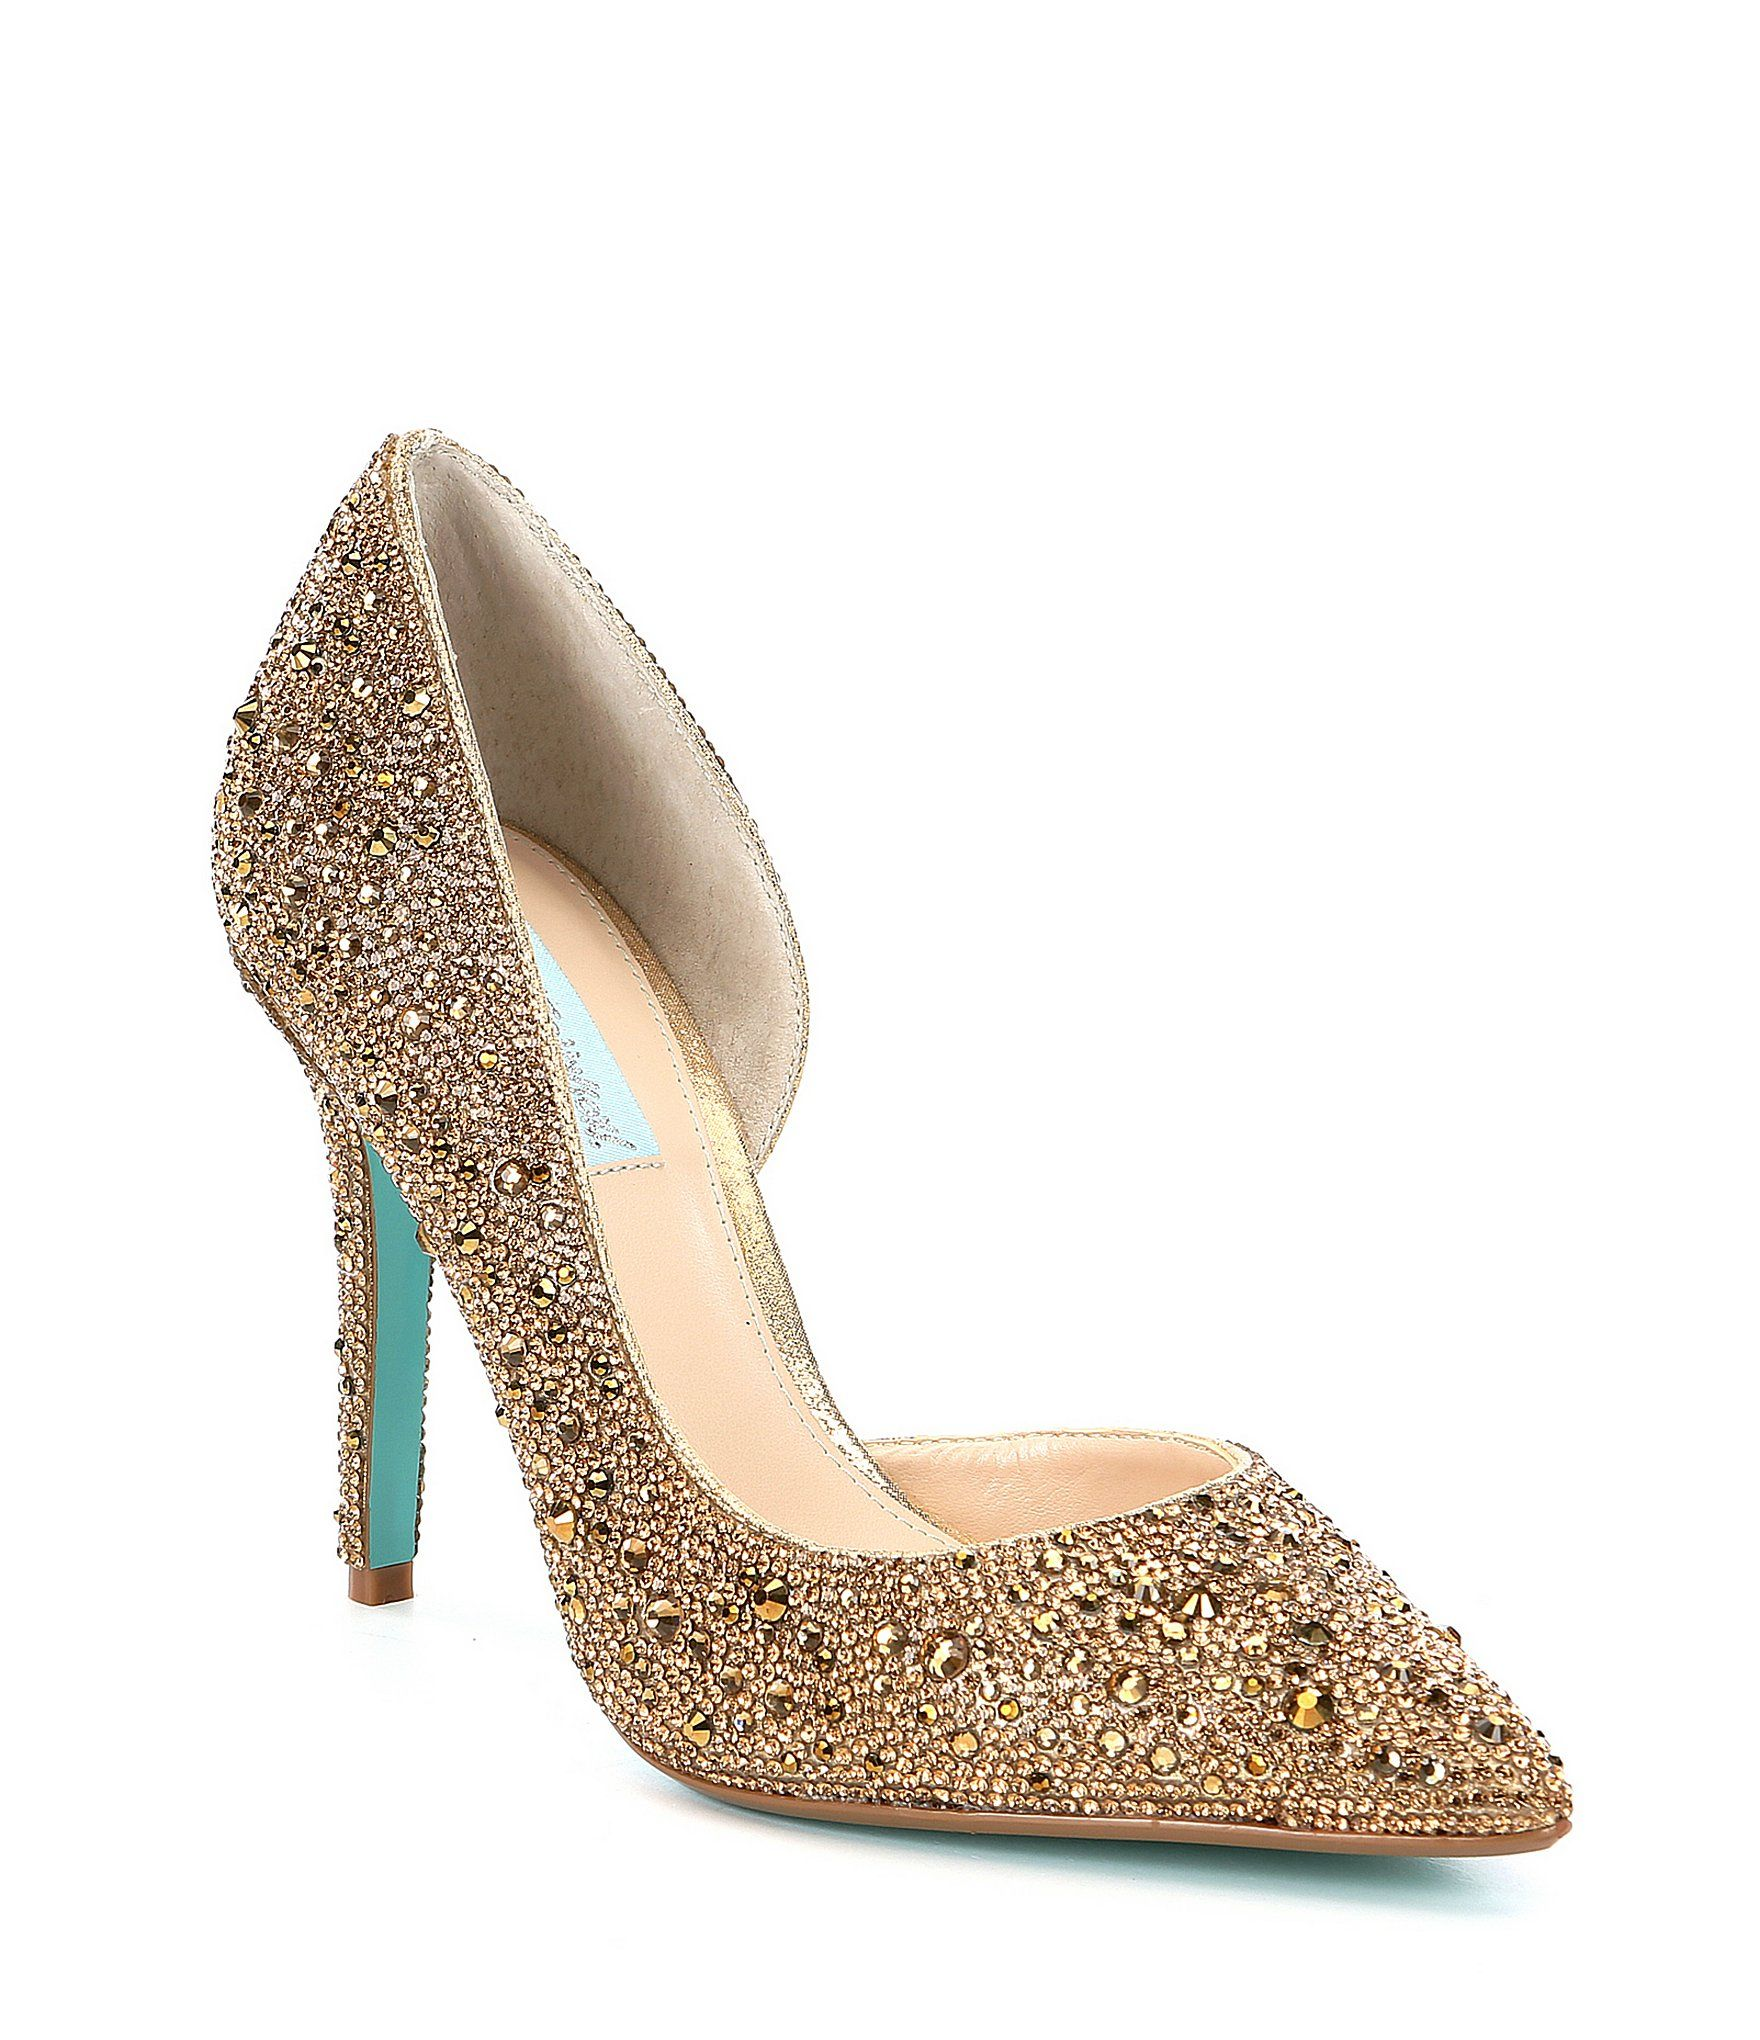 767c5a45975ee Blue by Betsey Johnson Hazil Jeweled Pumps in 2018